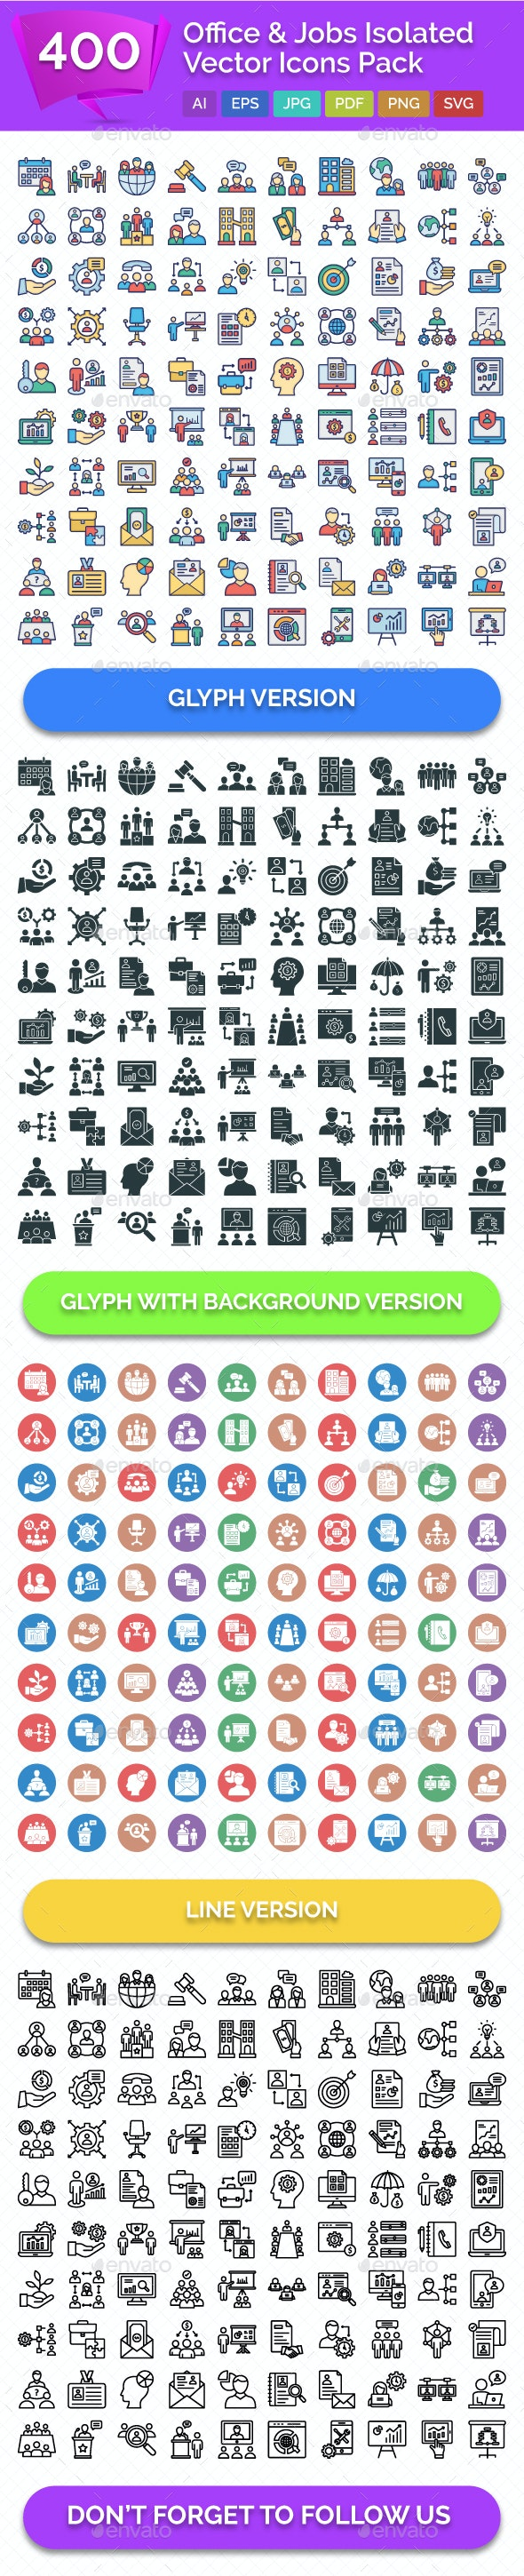 400 Office & Jobs Isolated Vector Icons Pack - Icons